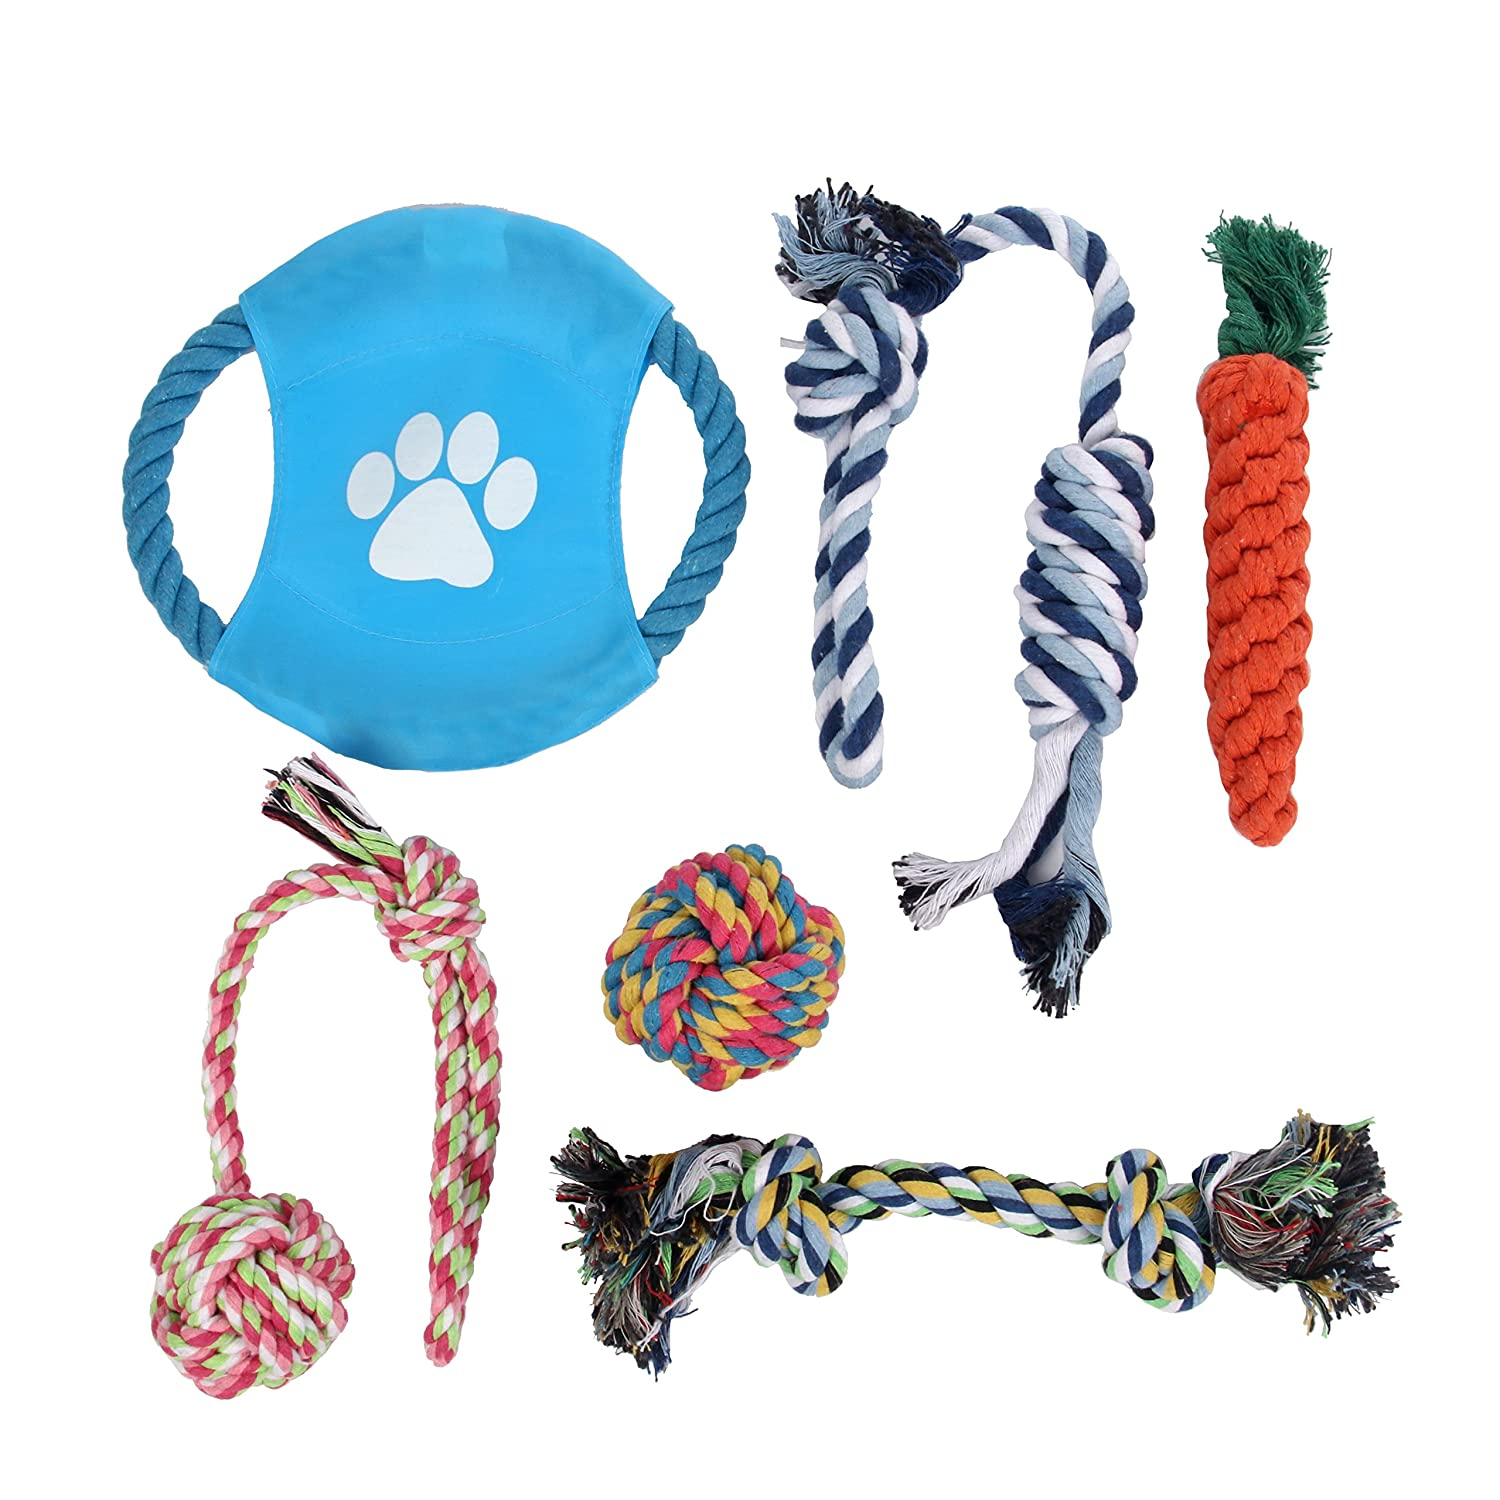 Panda Ovi Dog Rope Toys,Frisbee Puppy Pet Play Chew and Training Toys Set of 6 Pack